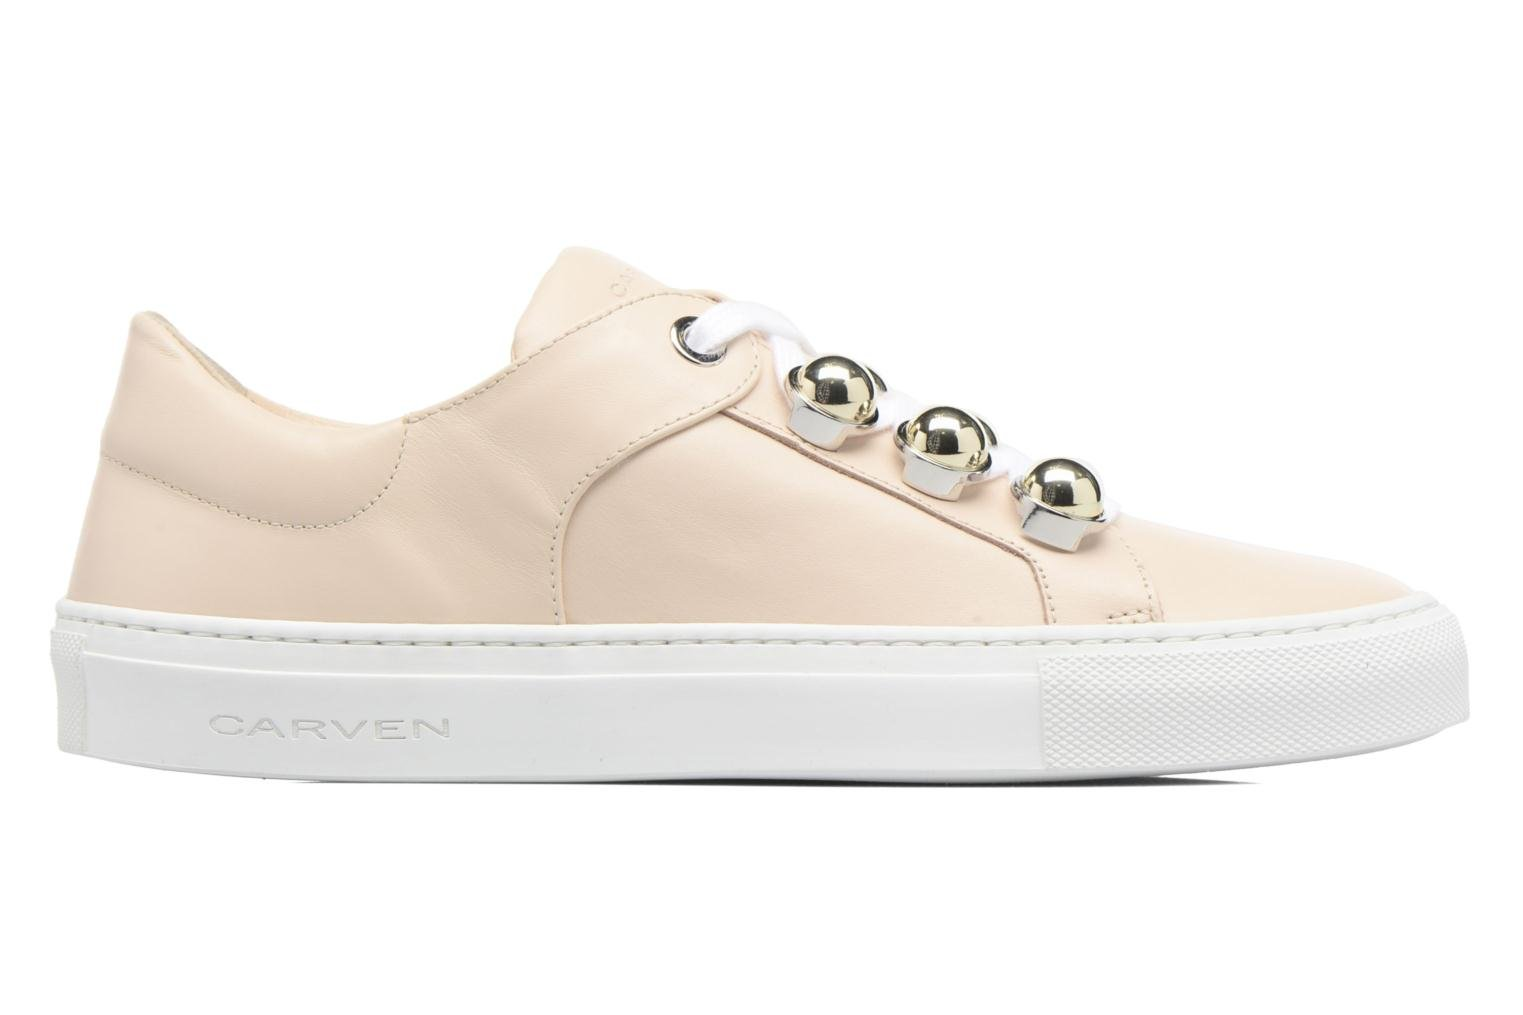 Baskets Carven Resonance Beige vue derrière